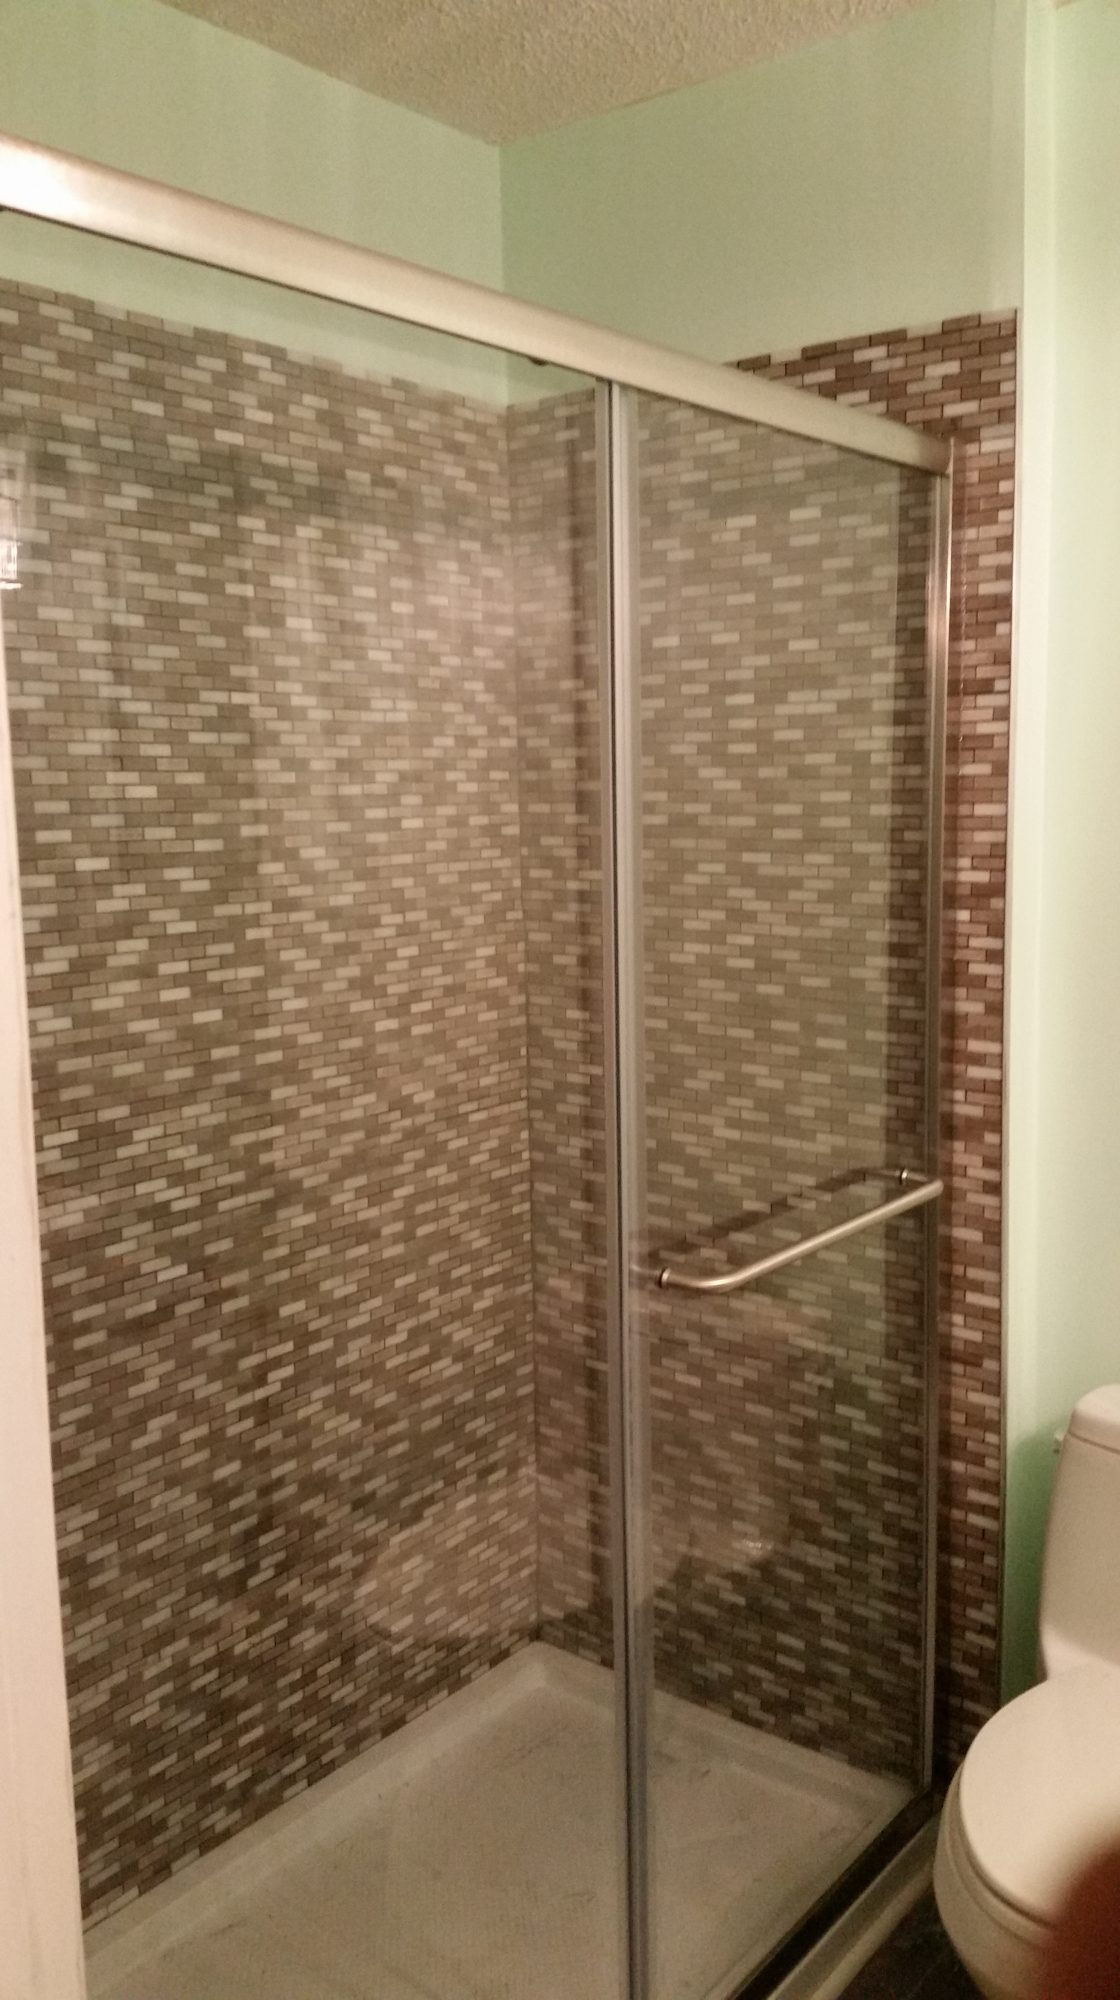 New Shower Tile and Door